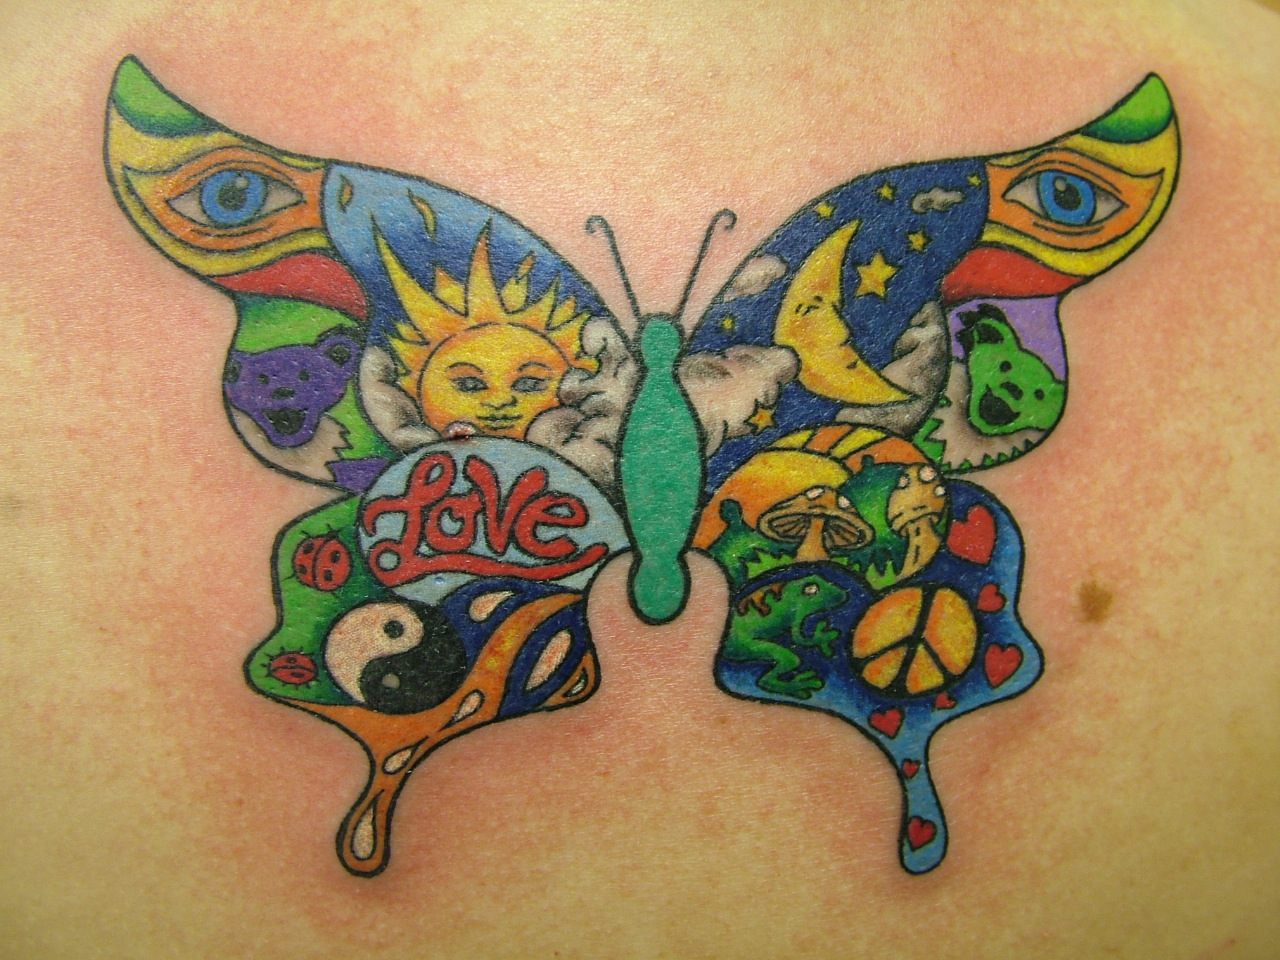 b4812a61481fe Awesome Colored Sun Moon Yin Yang And Animals In Butterfly Tattoo